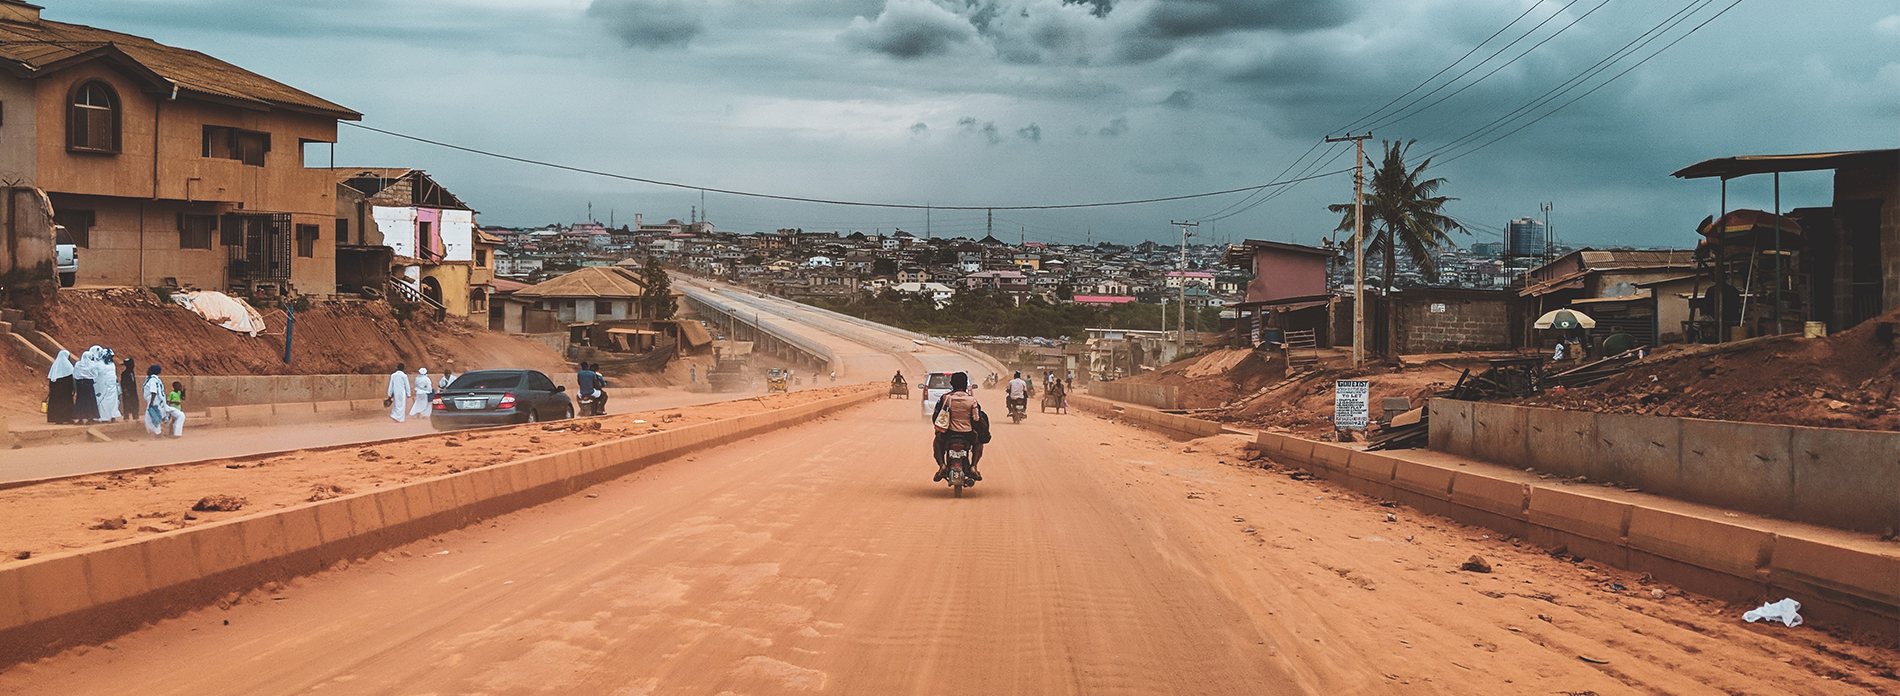 Nigerian road. Source: Joshua Oluwagbemiga via Unsplash